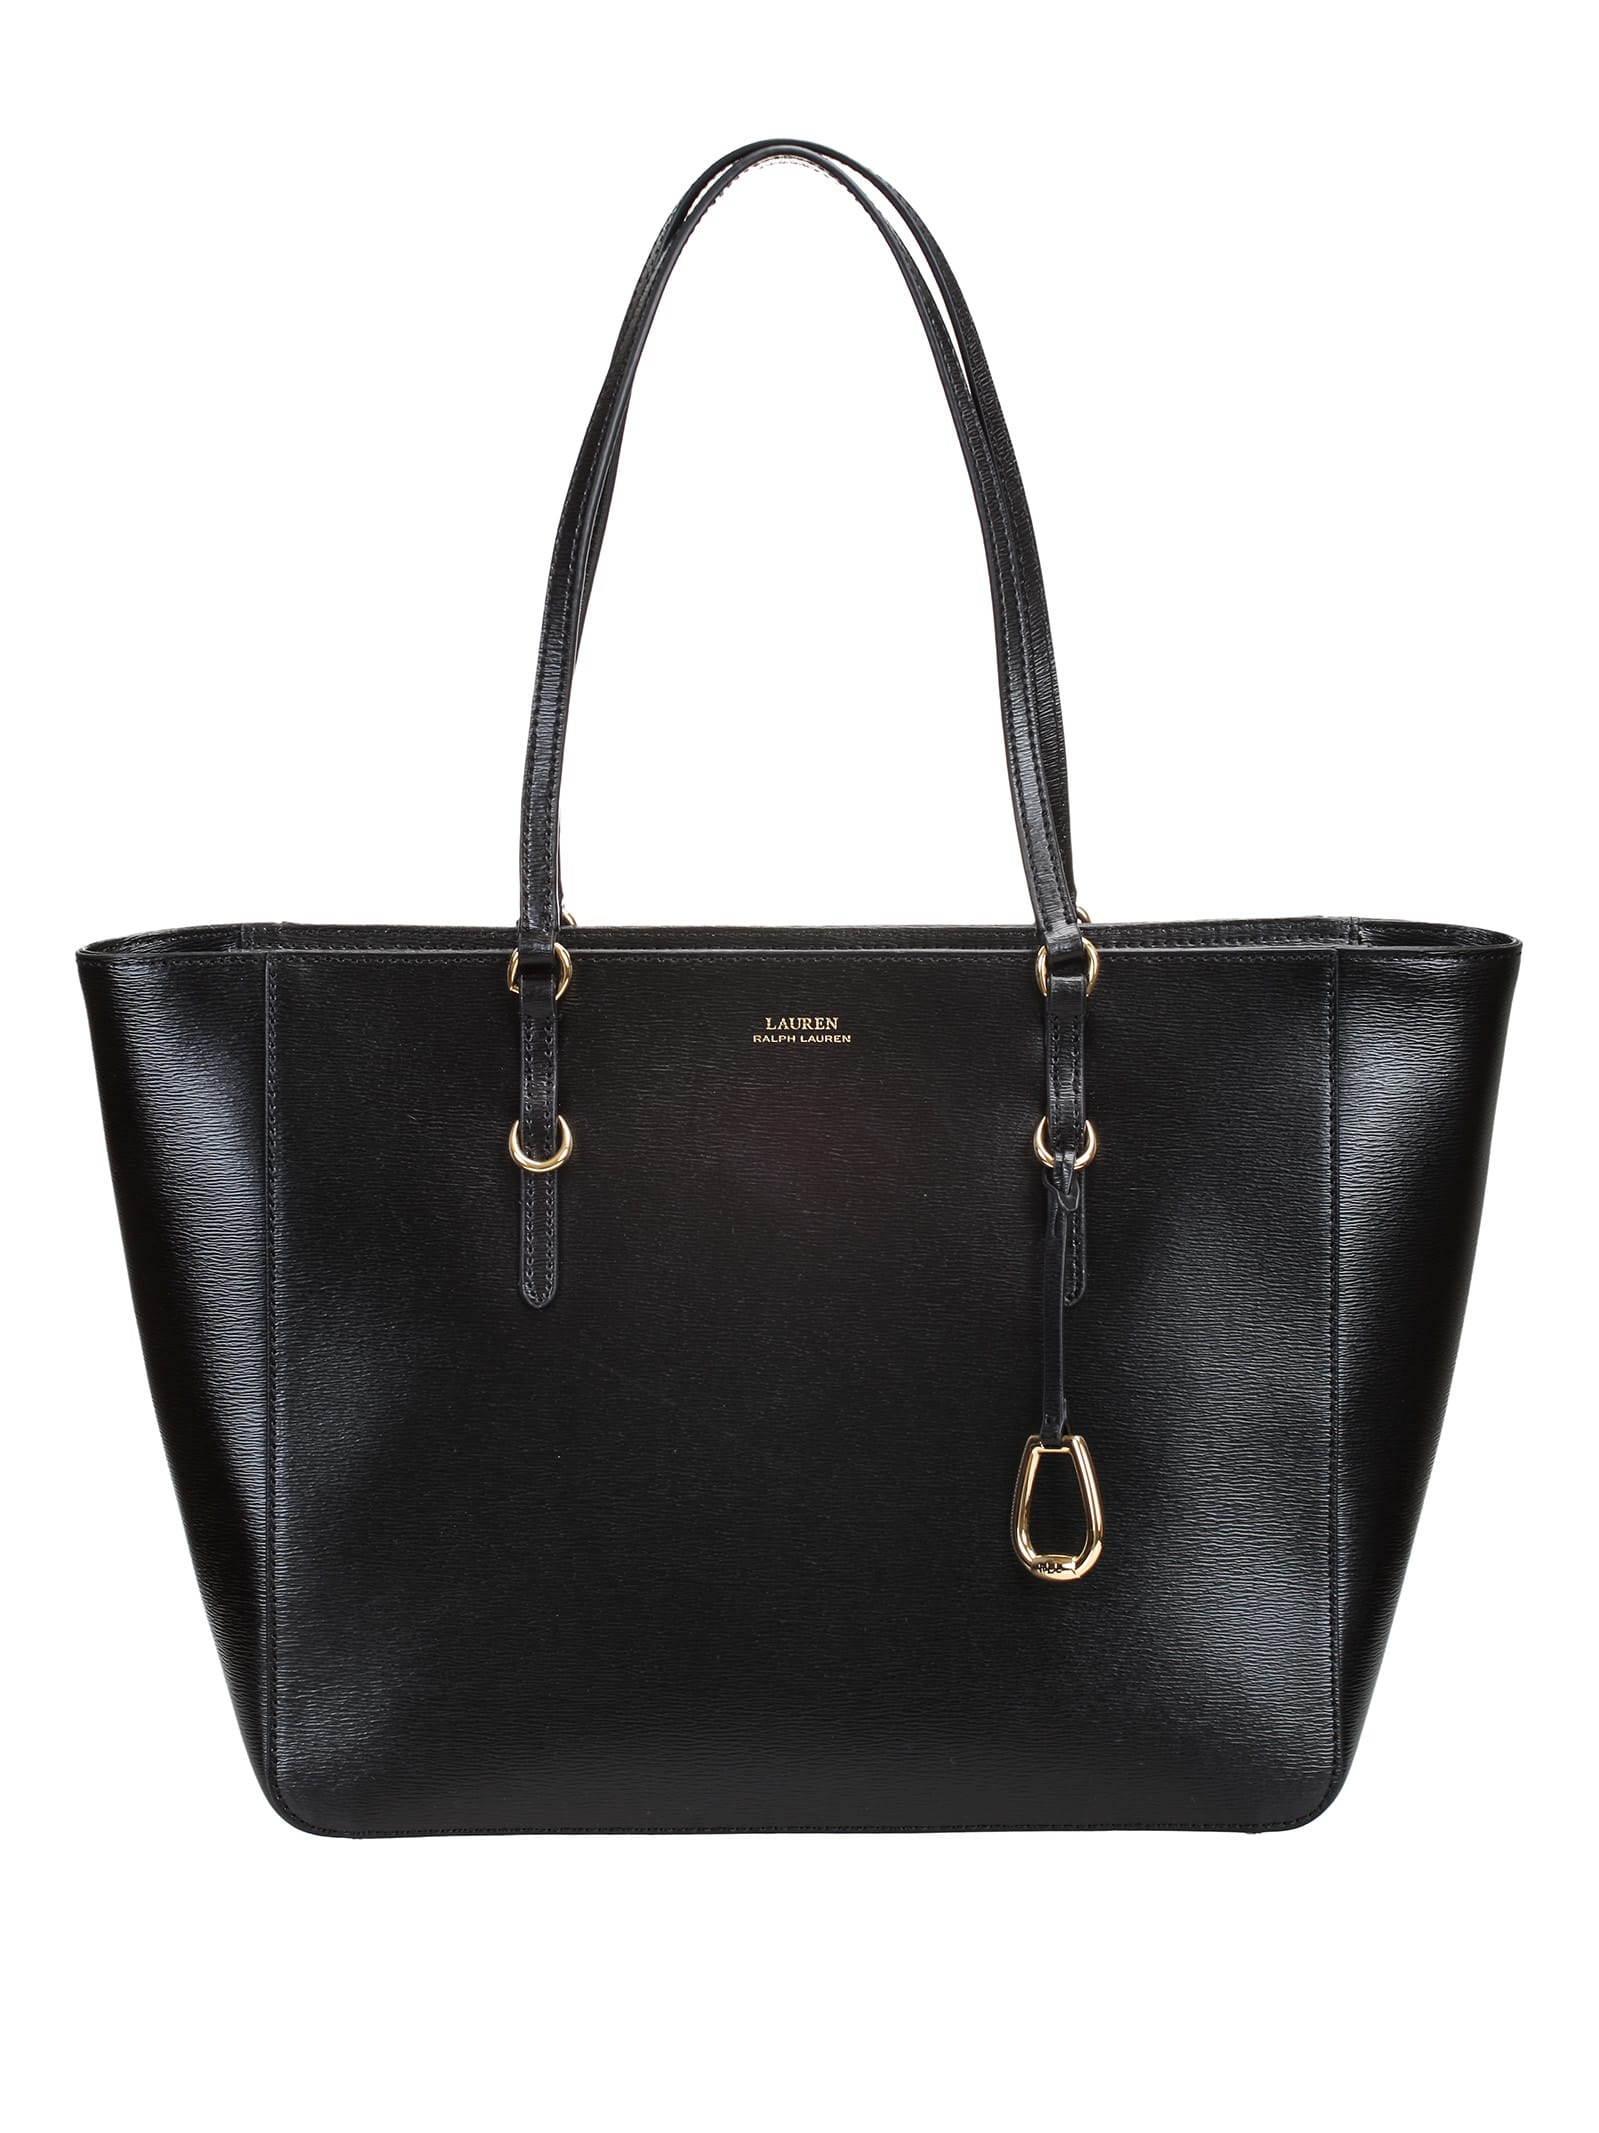 quality design 796f7 d4dcb Ralph Lauren Ralph Lauren Tote Oxford bag - Nero - 10927799 ...